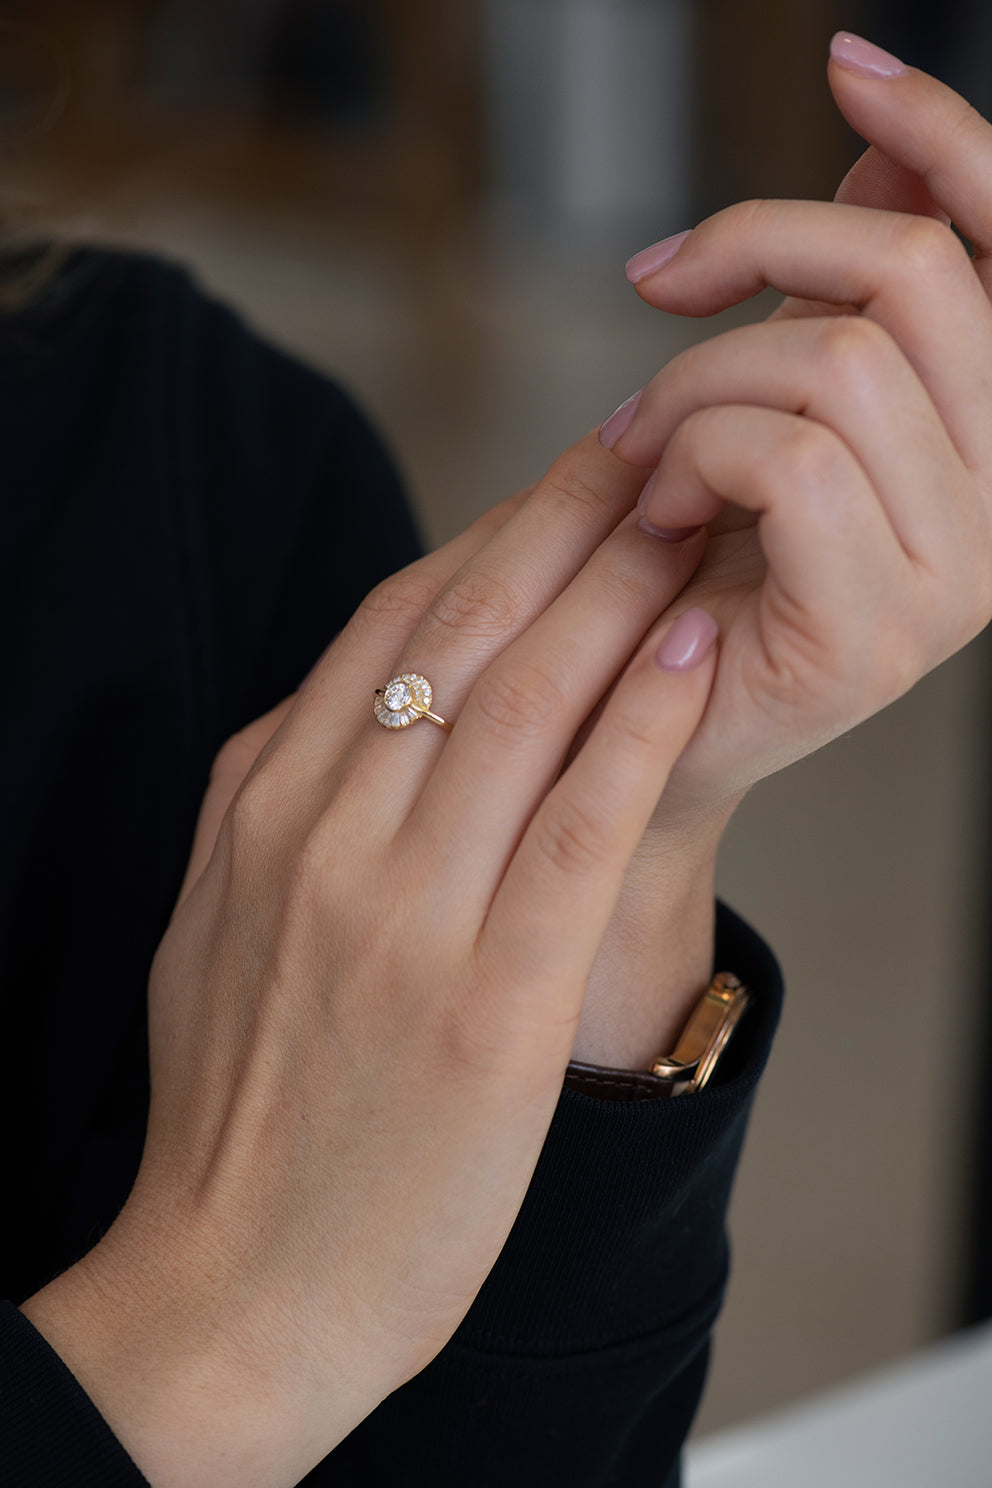 Round Diamond Cluster Engagement Ring on Hands